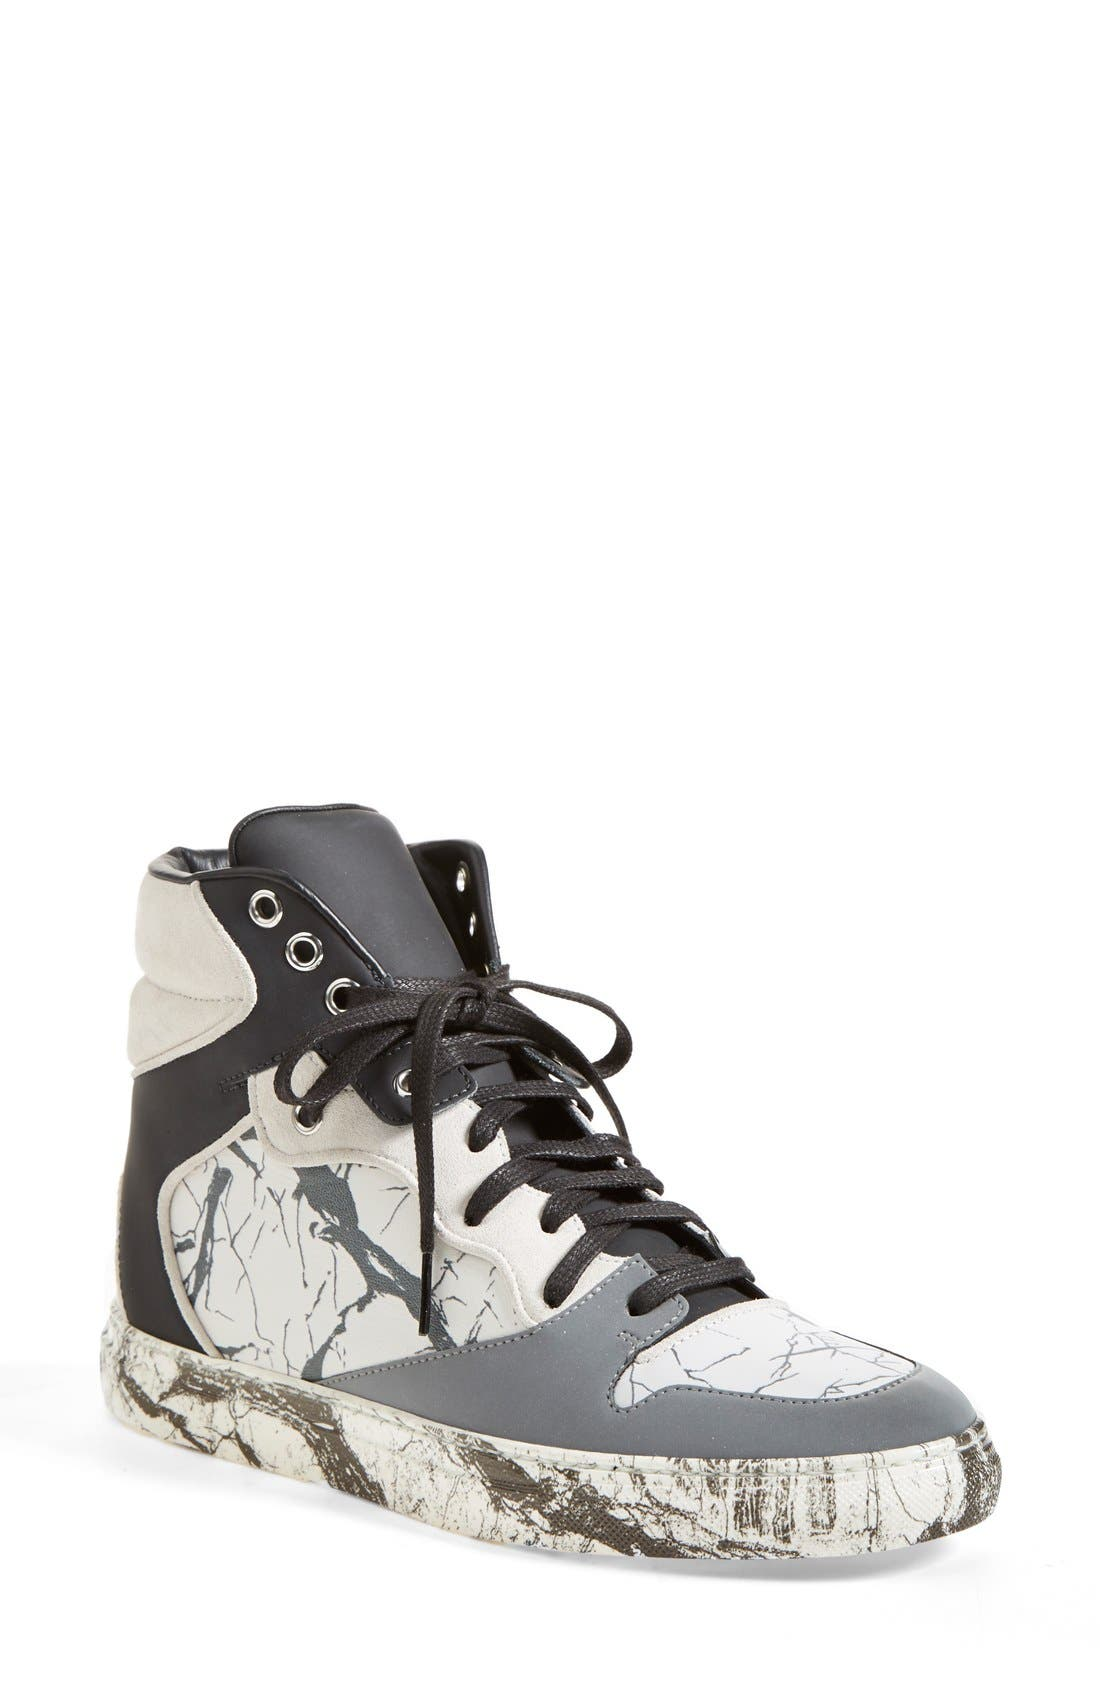 Alternate Image 1 Selected - Balenciaga Nappa Leather High Top Sneaker (Women)